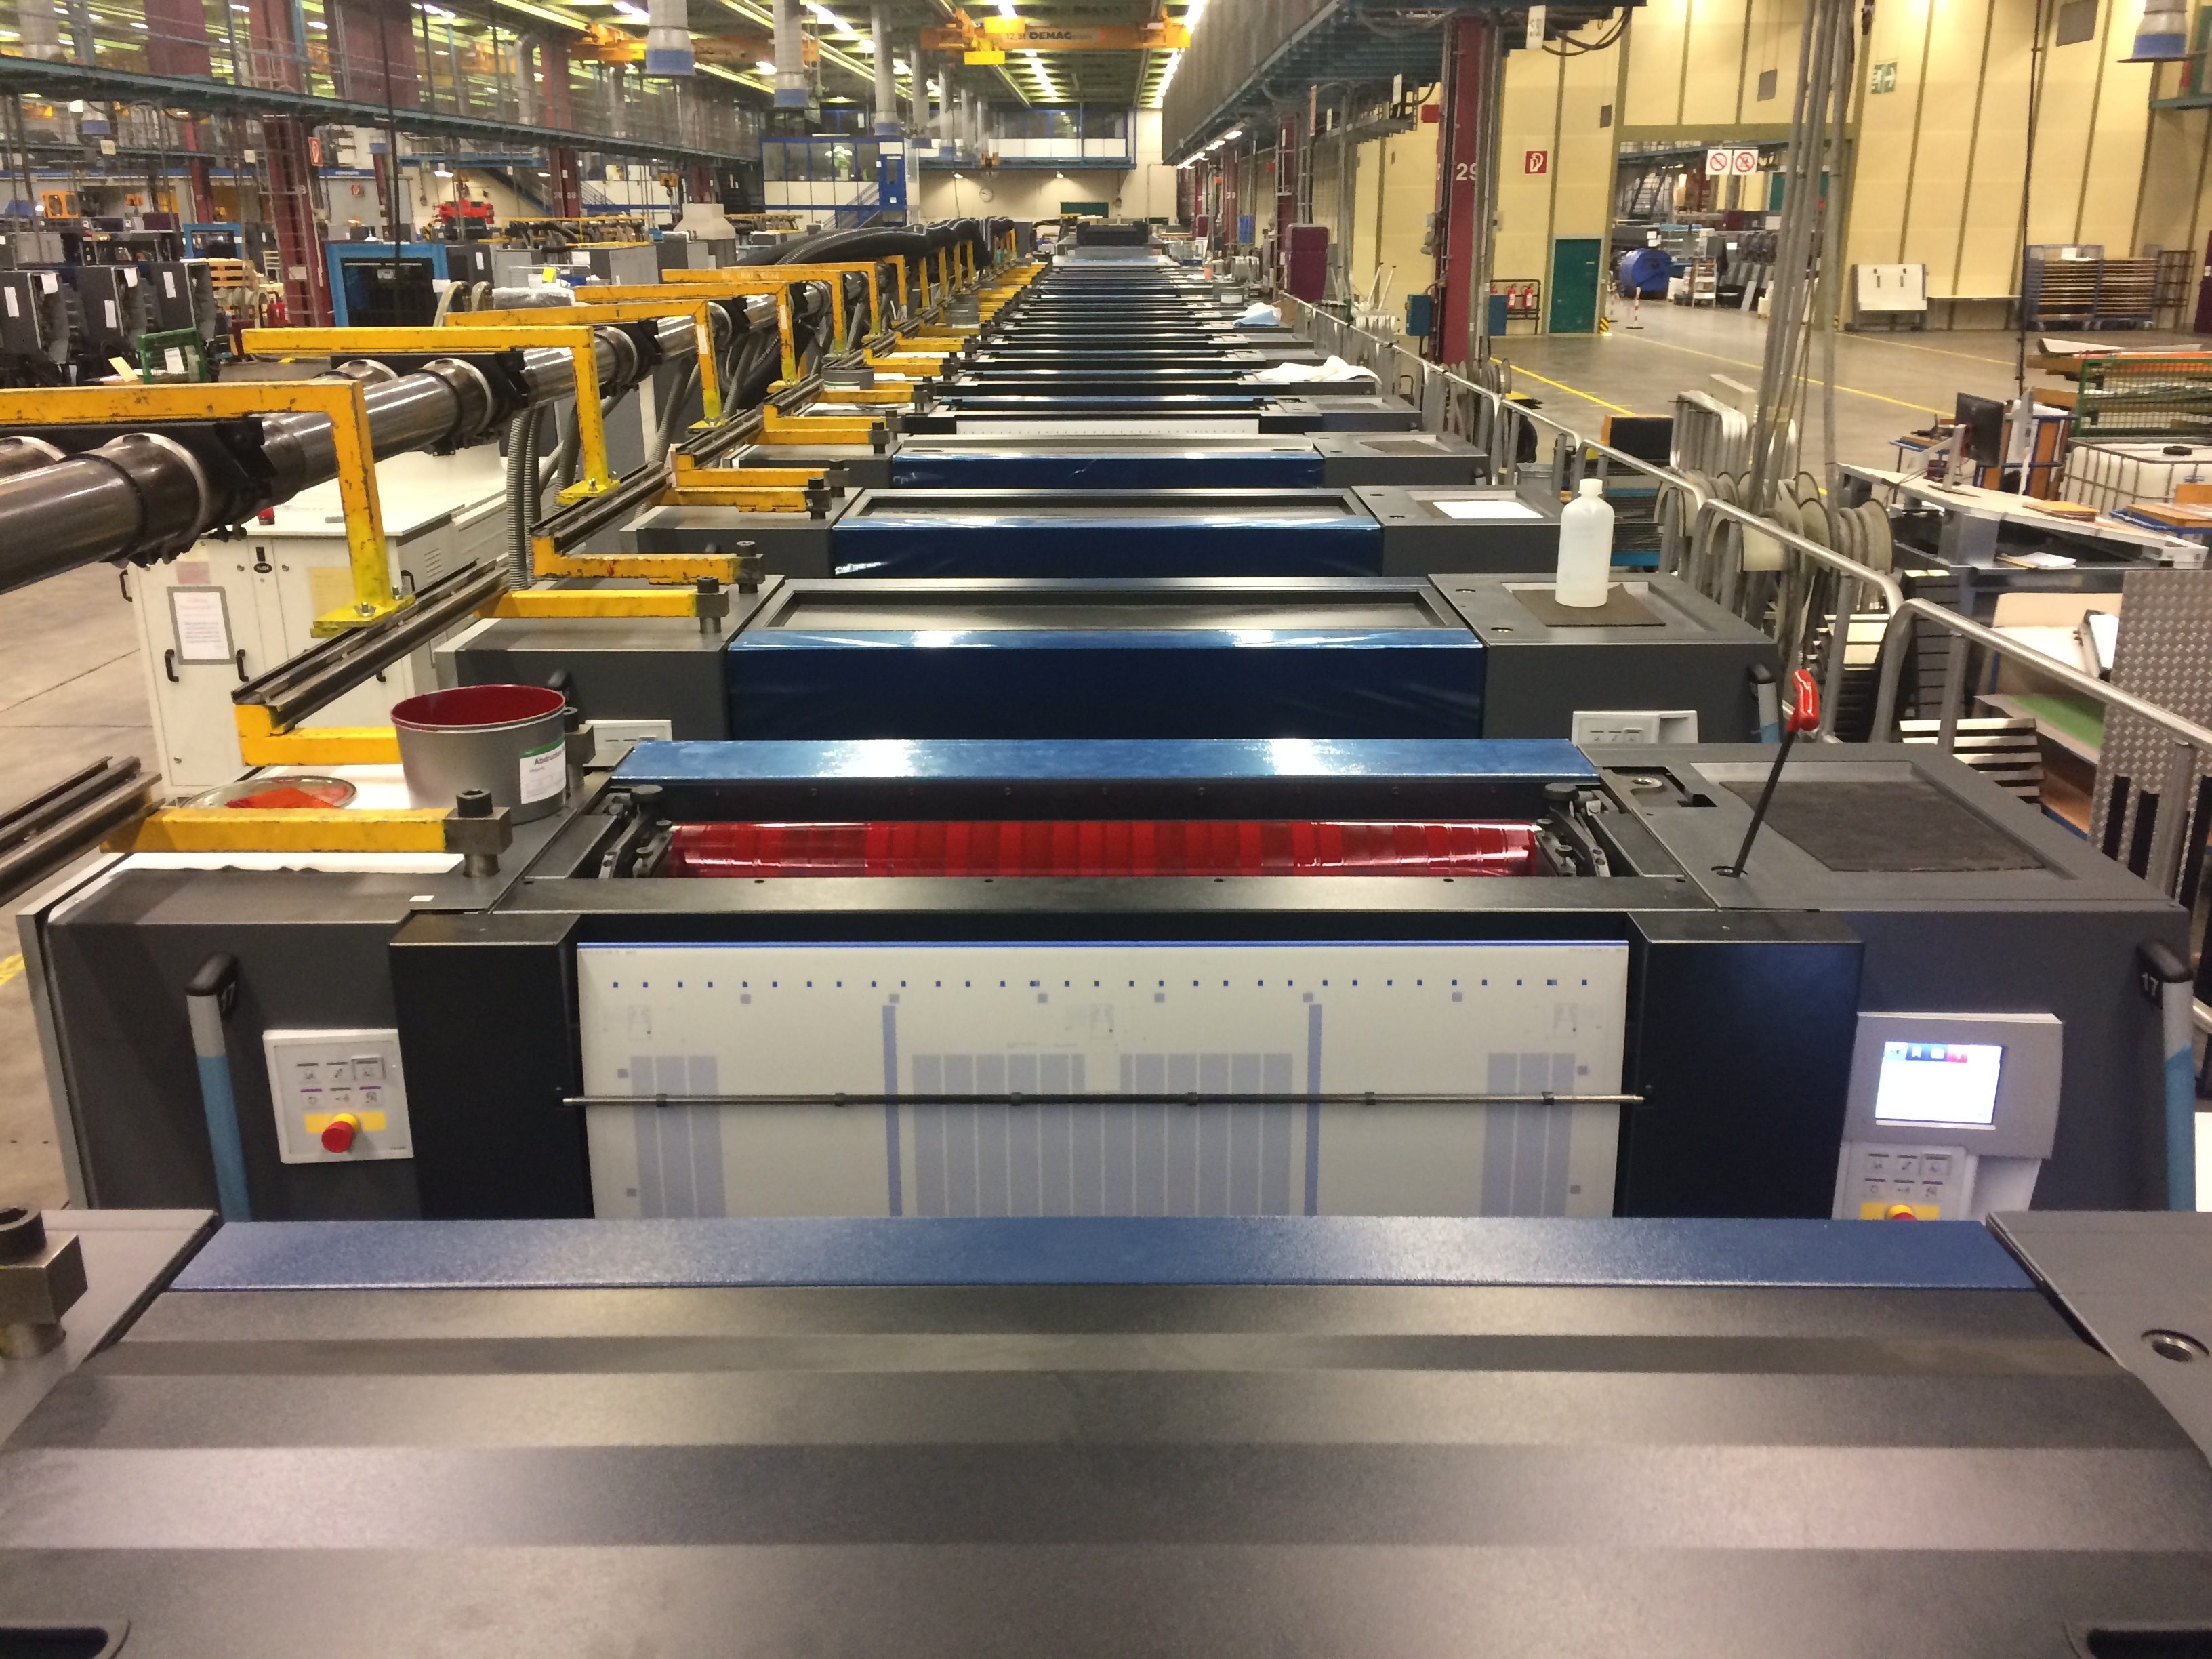 """Multi Packaging Solutions (""""MPS""""), a global leader in value-added print and packaging solutions for the healthcare, branded consumer and multi-media markets, has responded to customer demand by installing the most versatile press Heidelberg has ever manufactured for premium packaging - an 18-unit Speedmaster XL 106 press. (Photo: Business Wire)"""